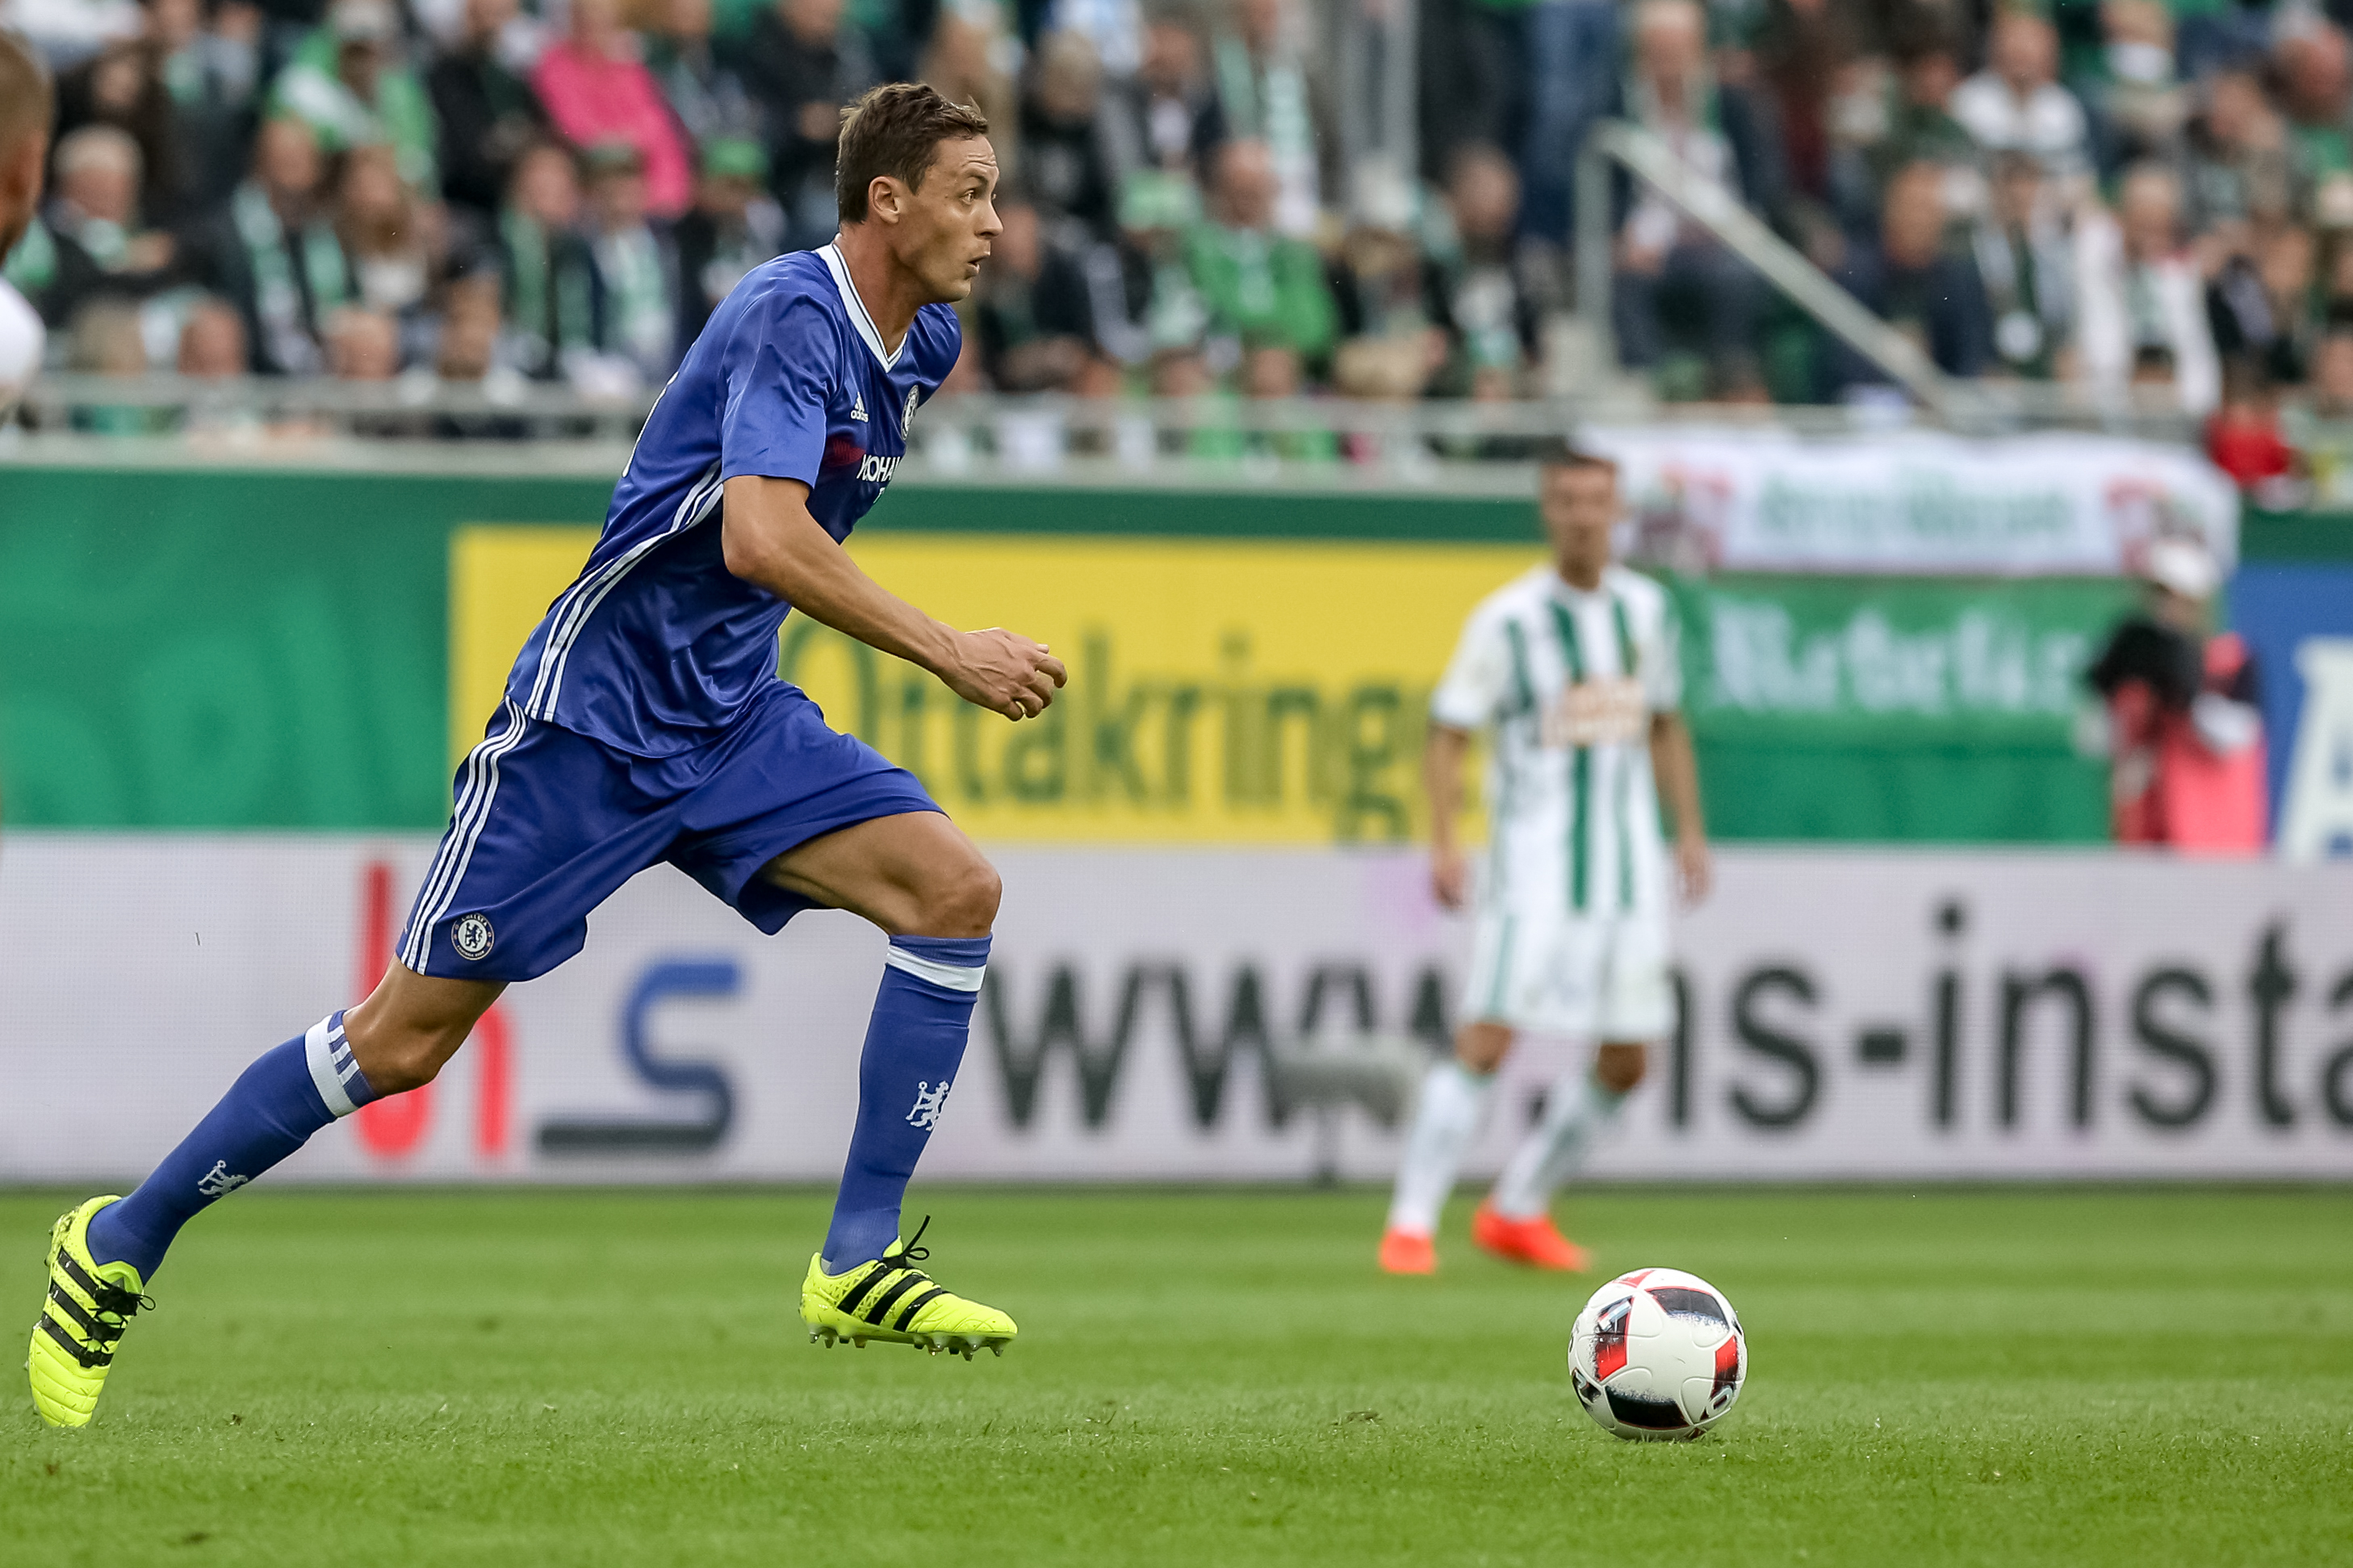 Chelsea should sell Nemanja Matic if price is right